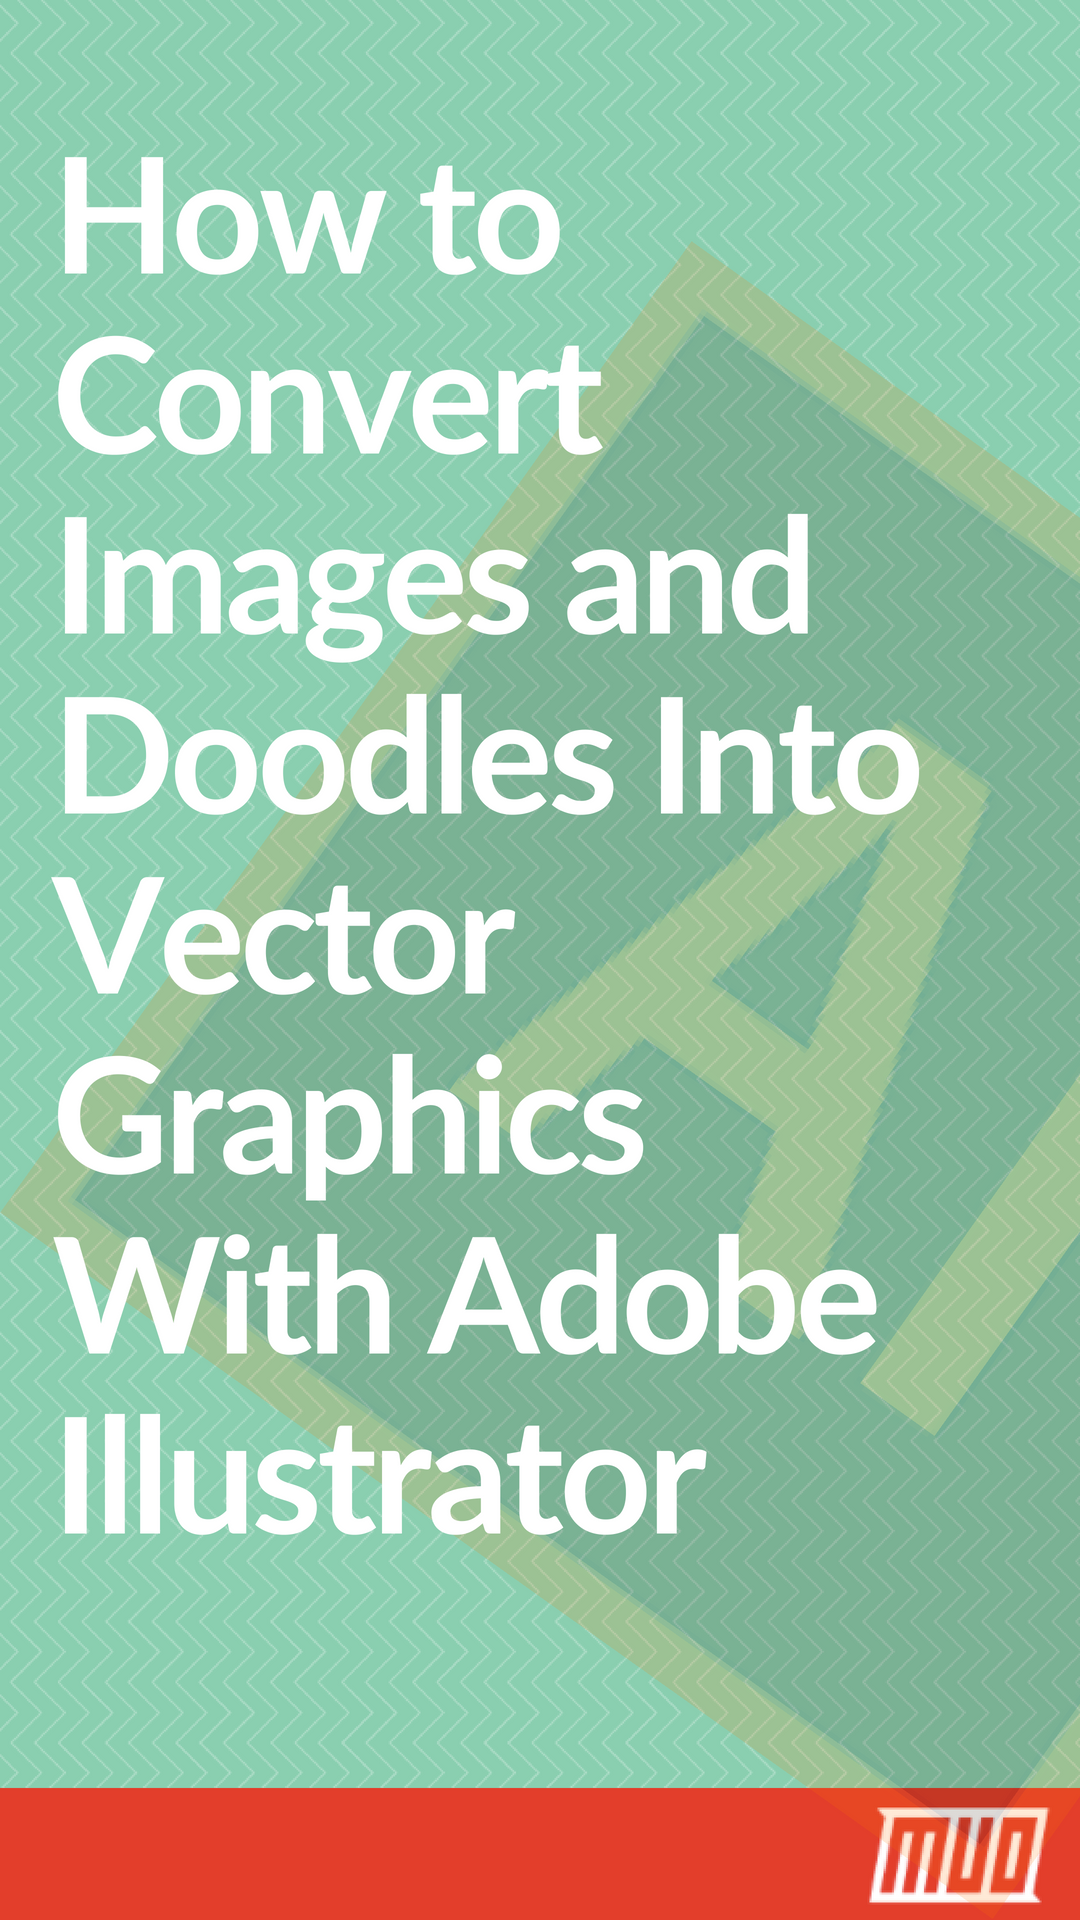 How to Convert Images and Doodles Into Vector Graphics